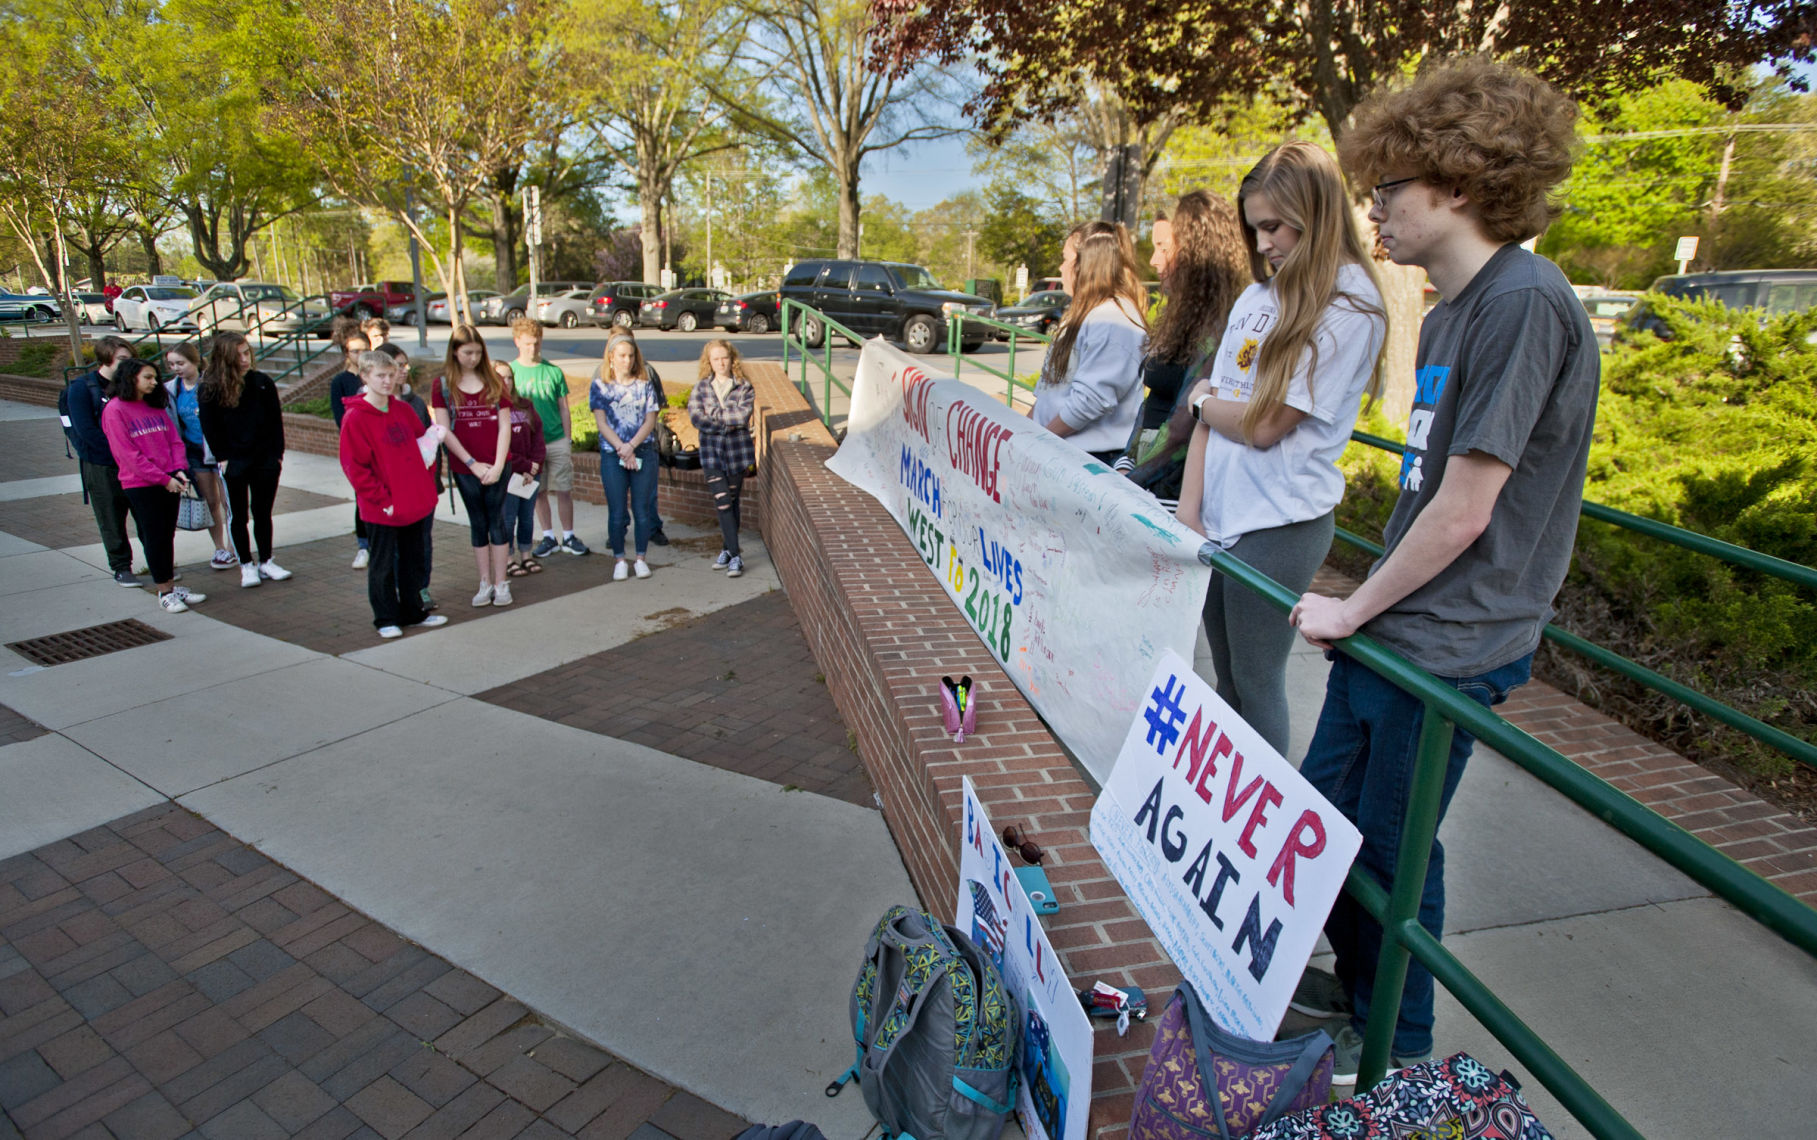 West Forsyth students call for gun law reform as they mark anniversary of Columbine massacre | Winston Salem Journal